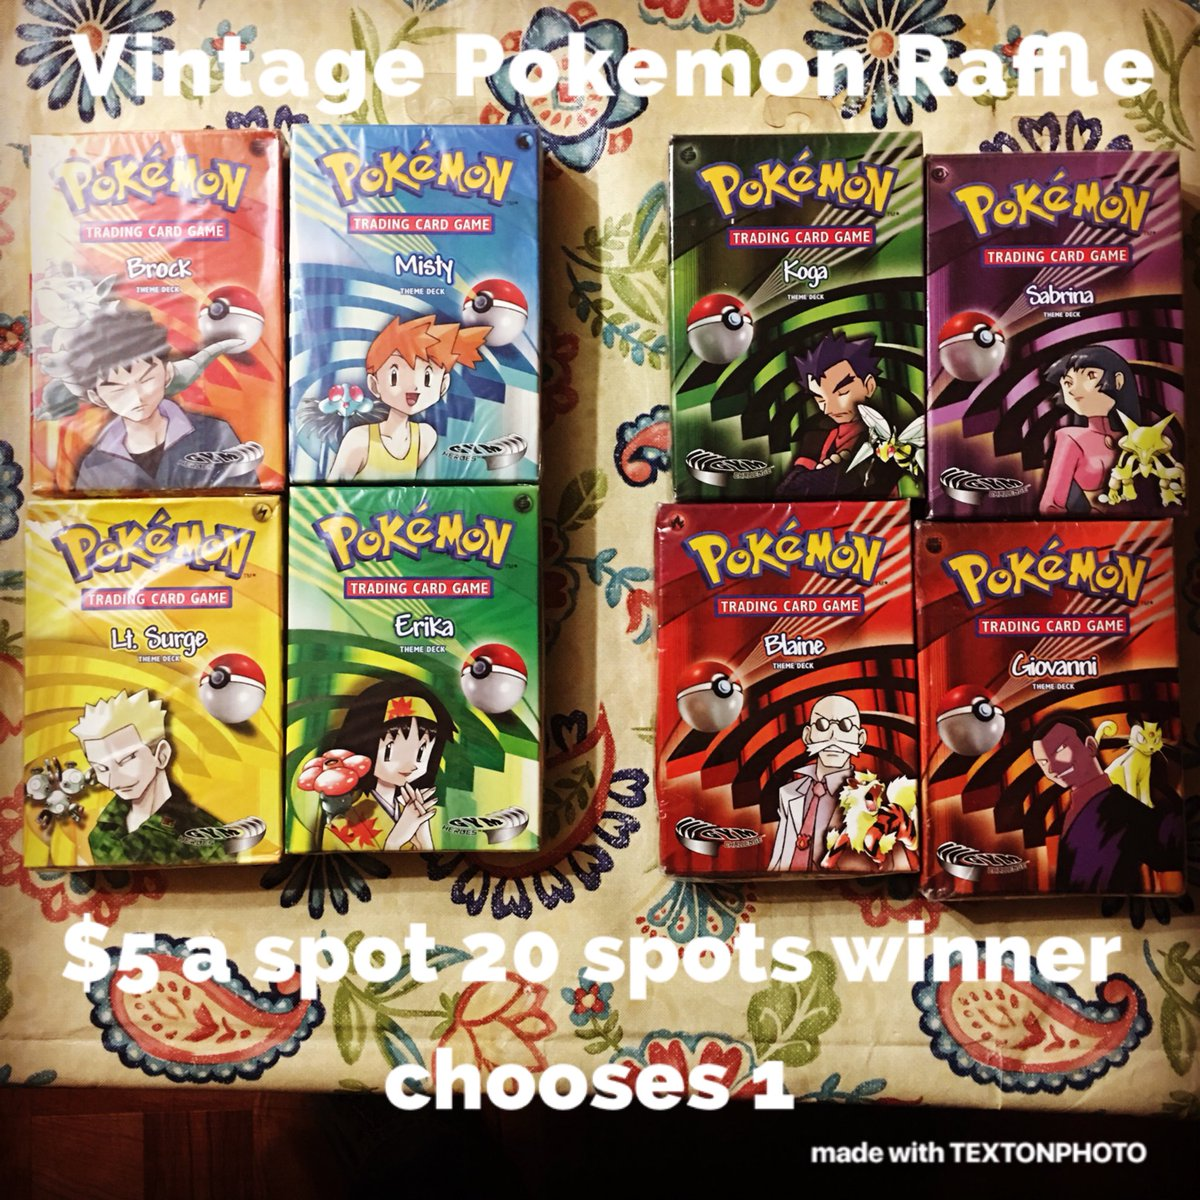 Hey guys I have a raffle going on right now on my Instagram page. If you are interested in anything vintage related check it out only $5 an entry!  https://Instagram.com/p/Be_yxHkACnJ/   #pokemon #pokemonraffles #vintagepokemon #pokemongymheroea #pokemongymchallenge #gymheroea #gymchallengepic.twitter.com/fE7U69LxX9